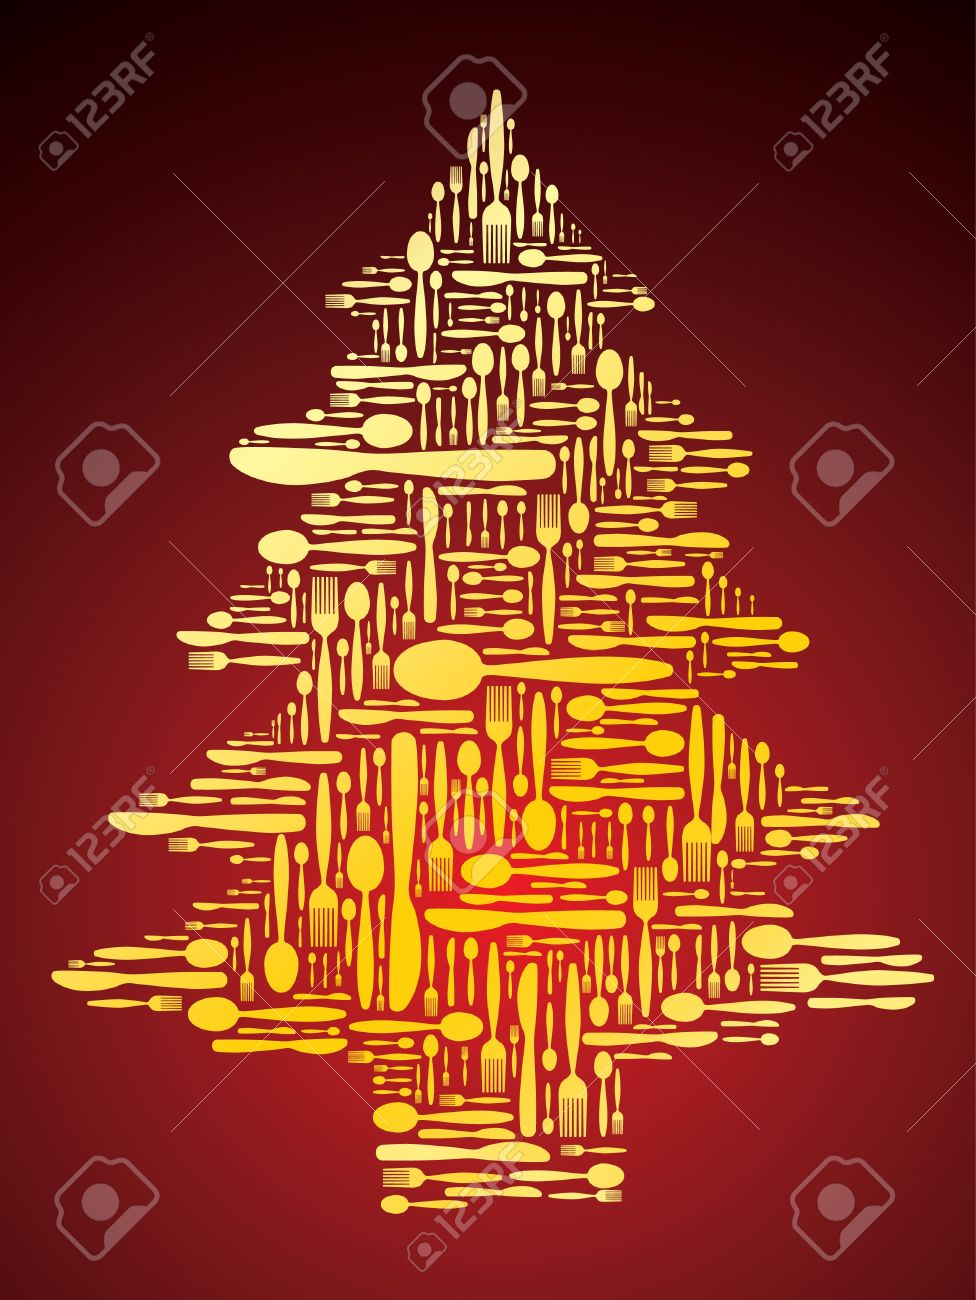 Cutlery as Christmas tree Stock Vector - 10591364